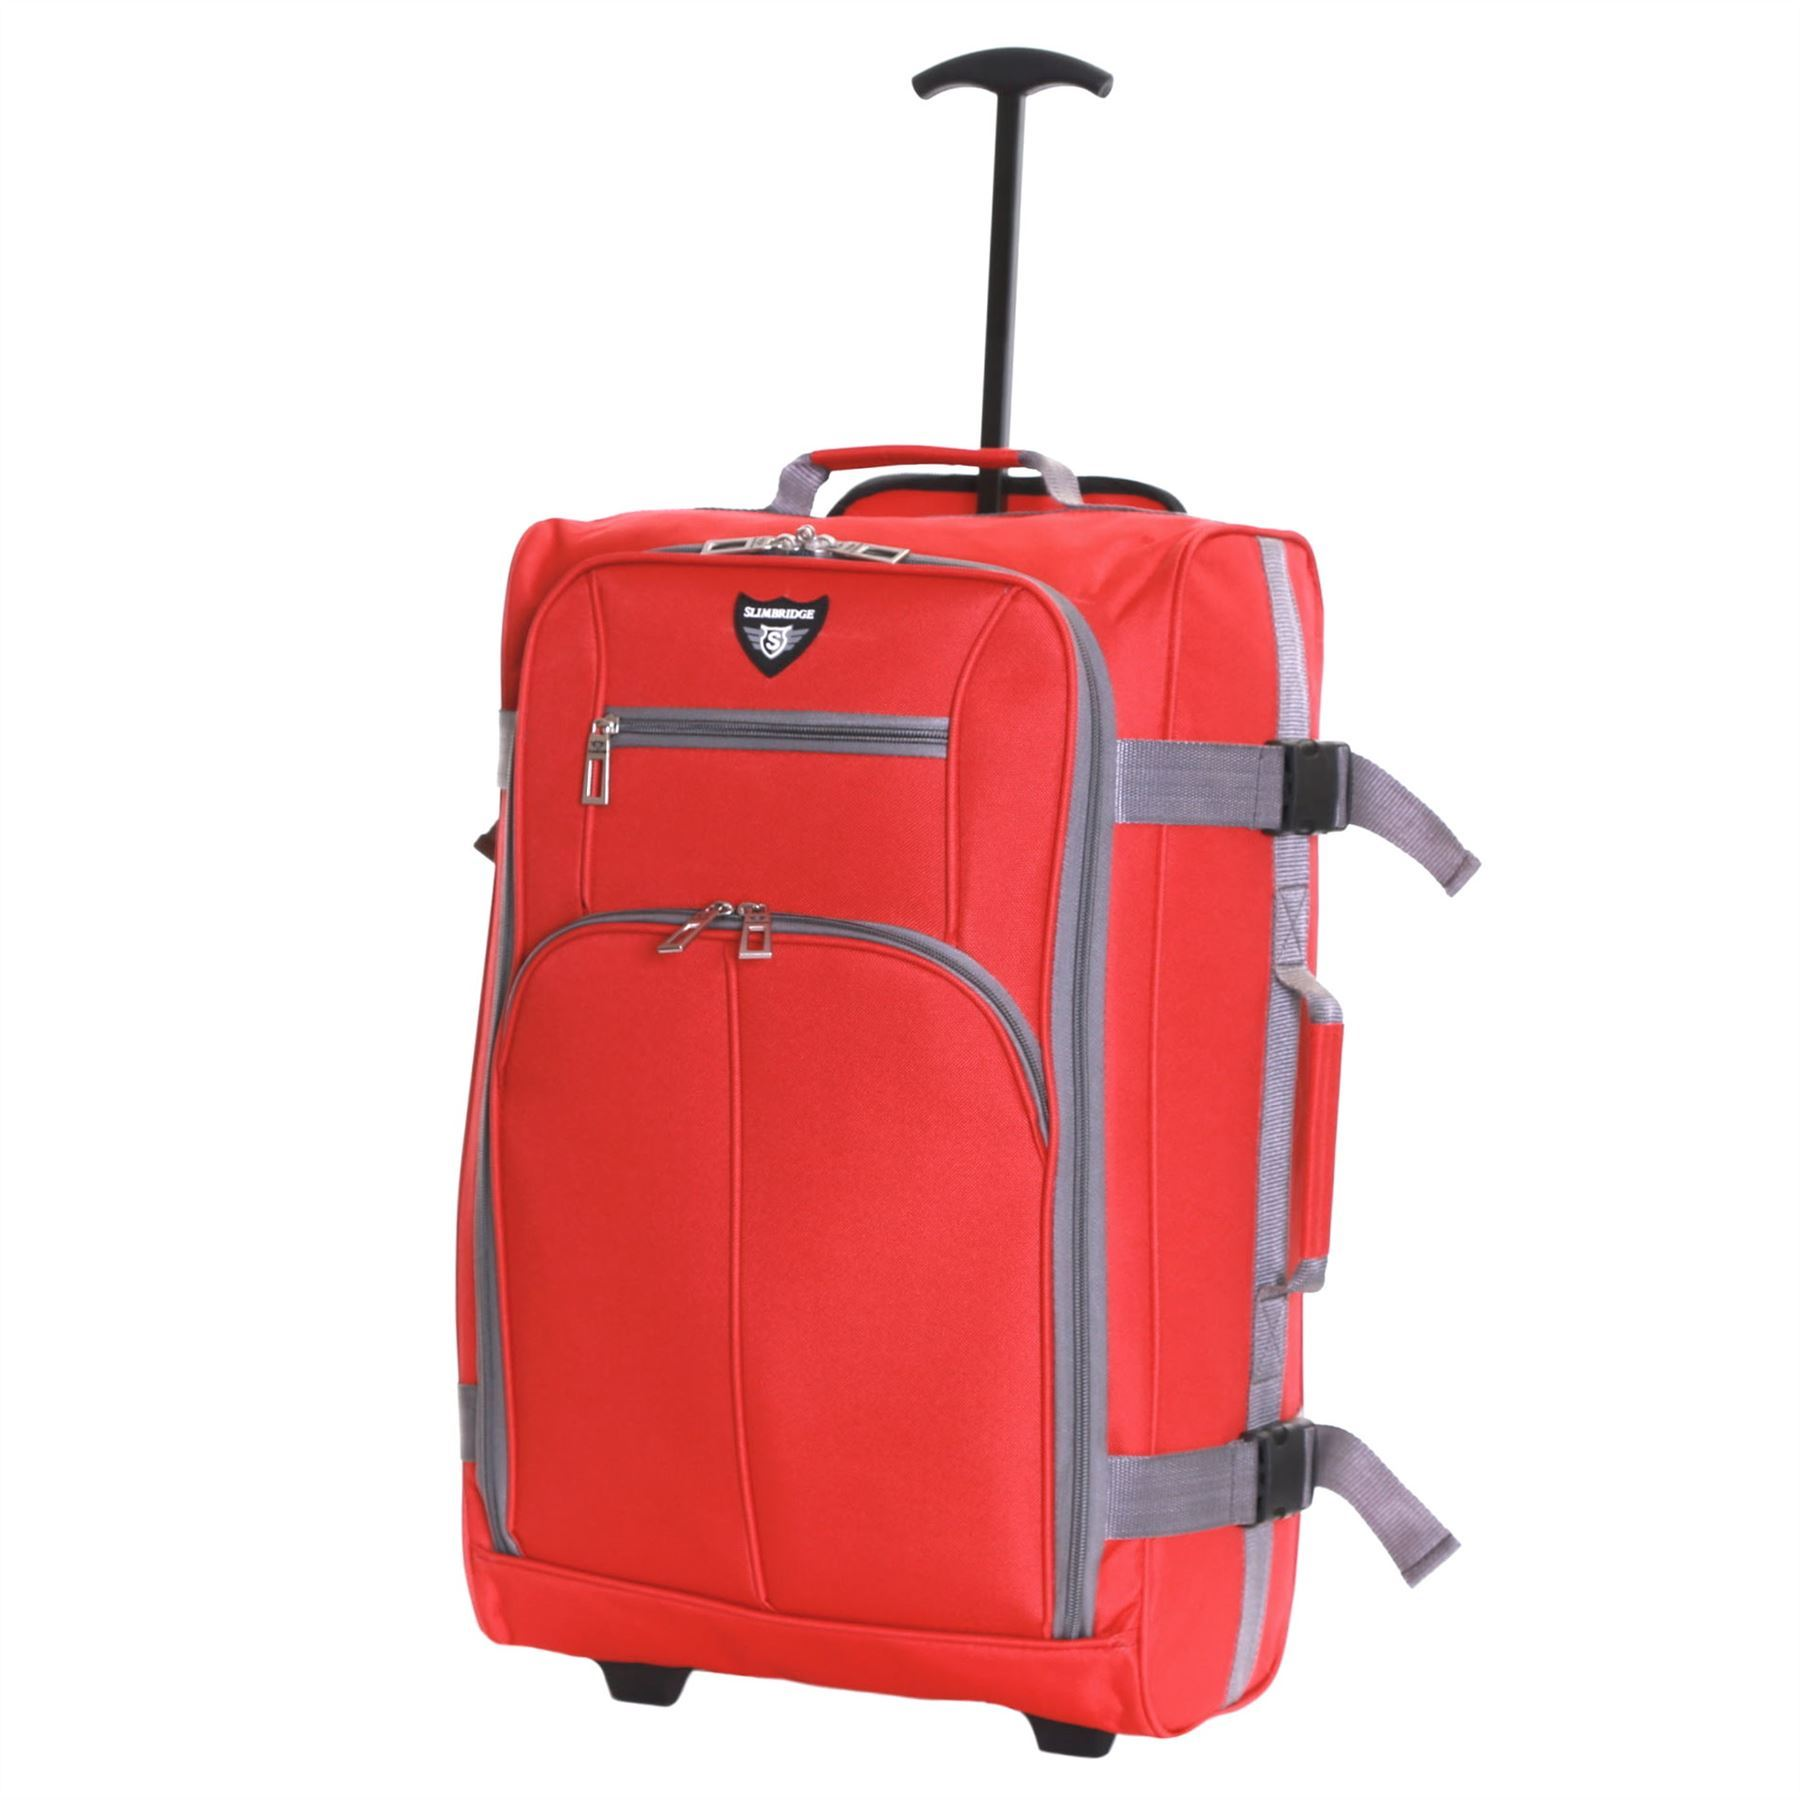 Ryanair-Easyjet-Set-of-2-Cabin-Approved-Hand-Trolley-Suitcases-Luggage-Case-Bags thumbnail 34